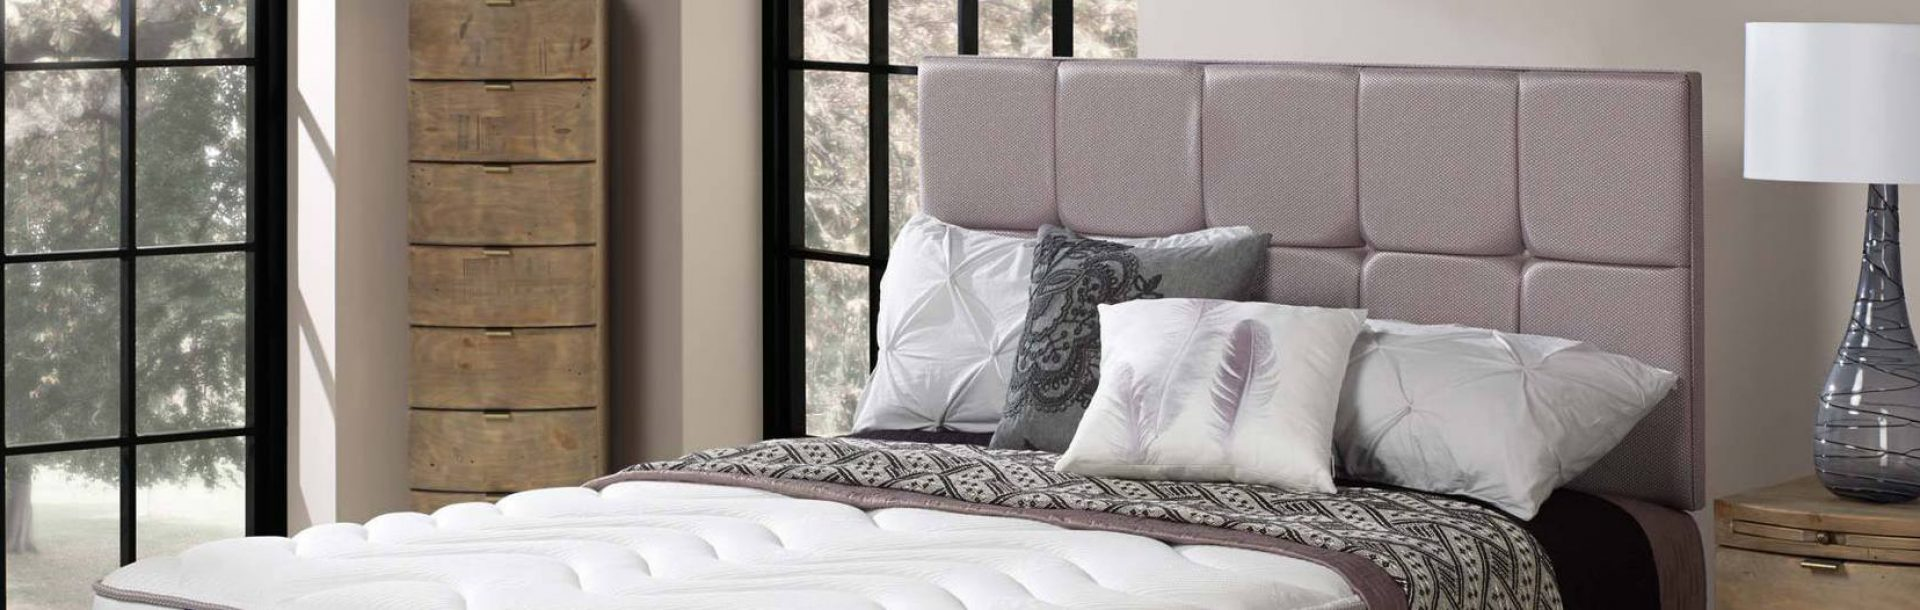 Breathtaking furniture that will transform any bedroom